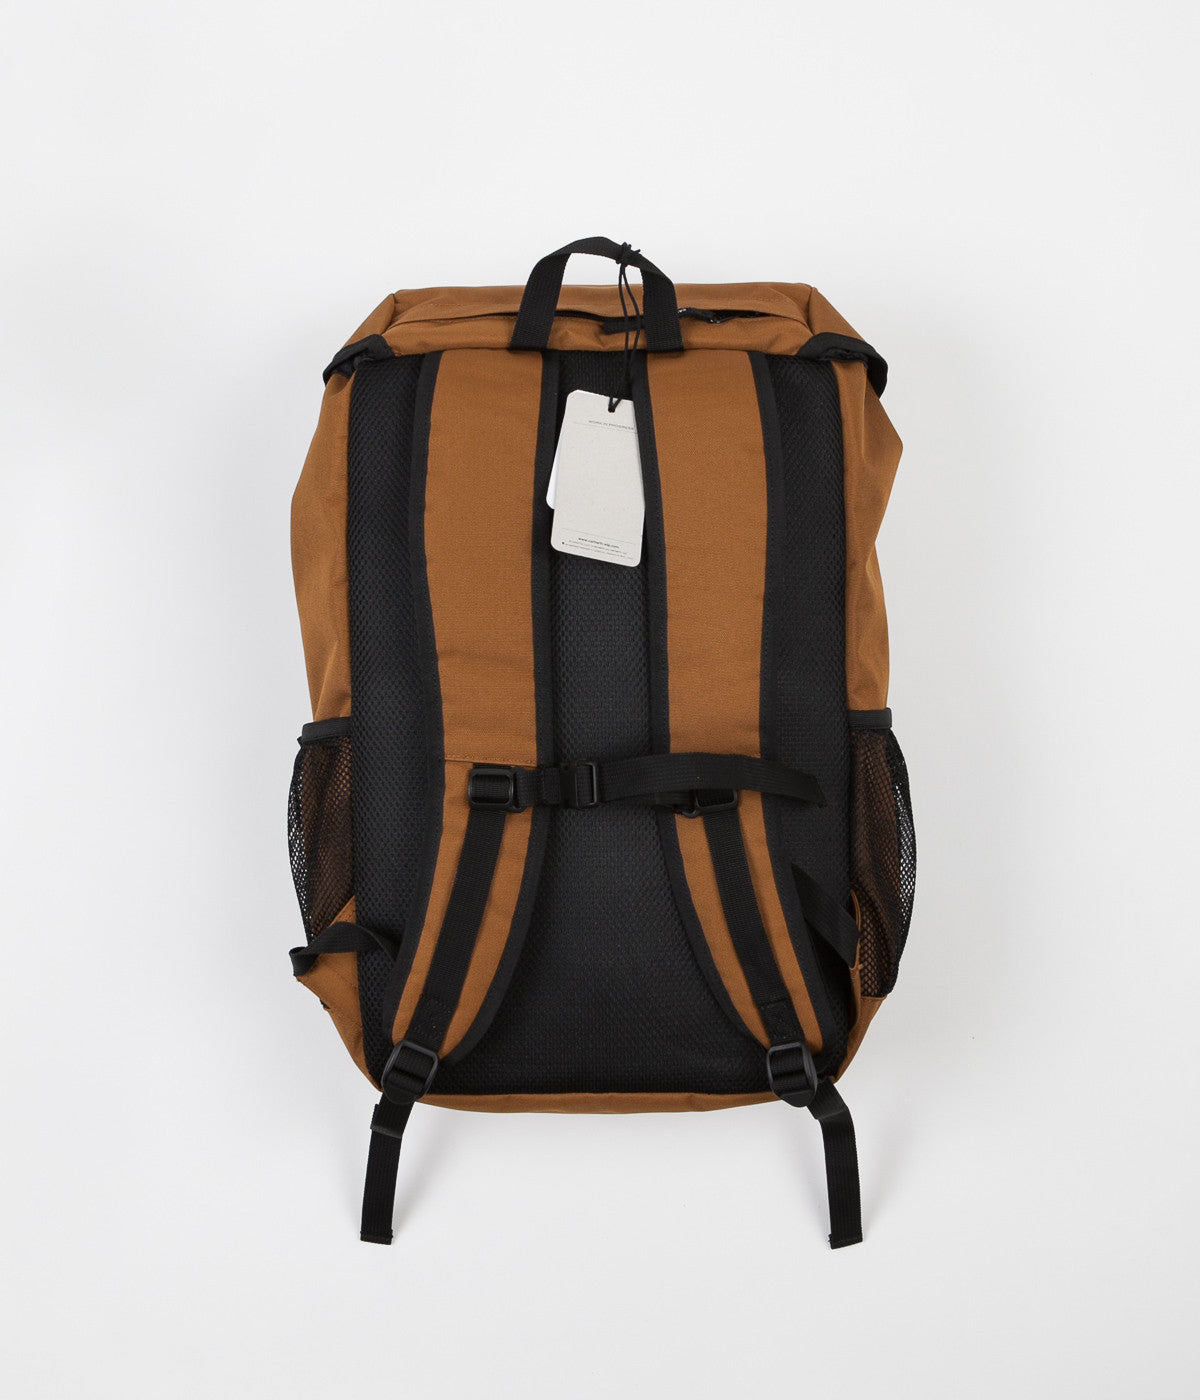 Carhartt Gard Backpack - Hamilton Brown